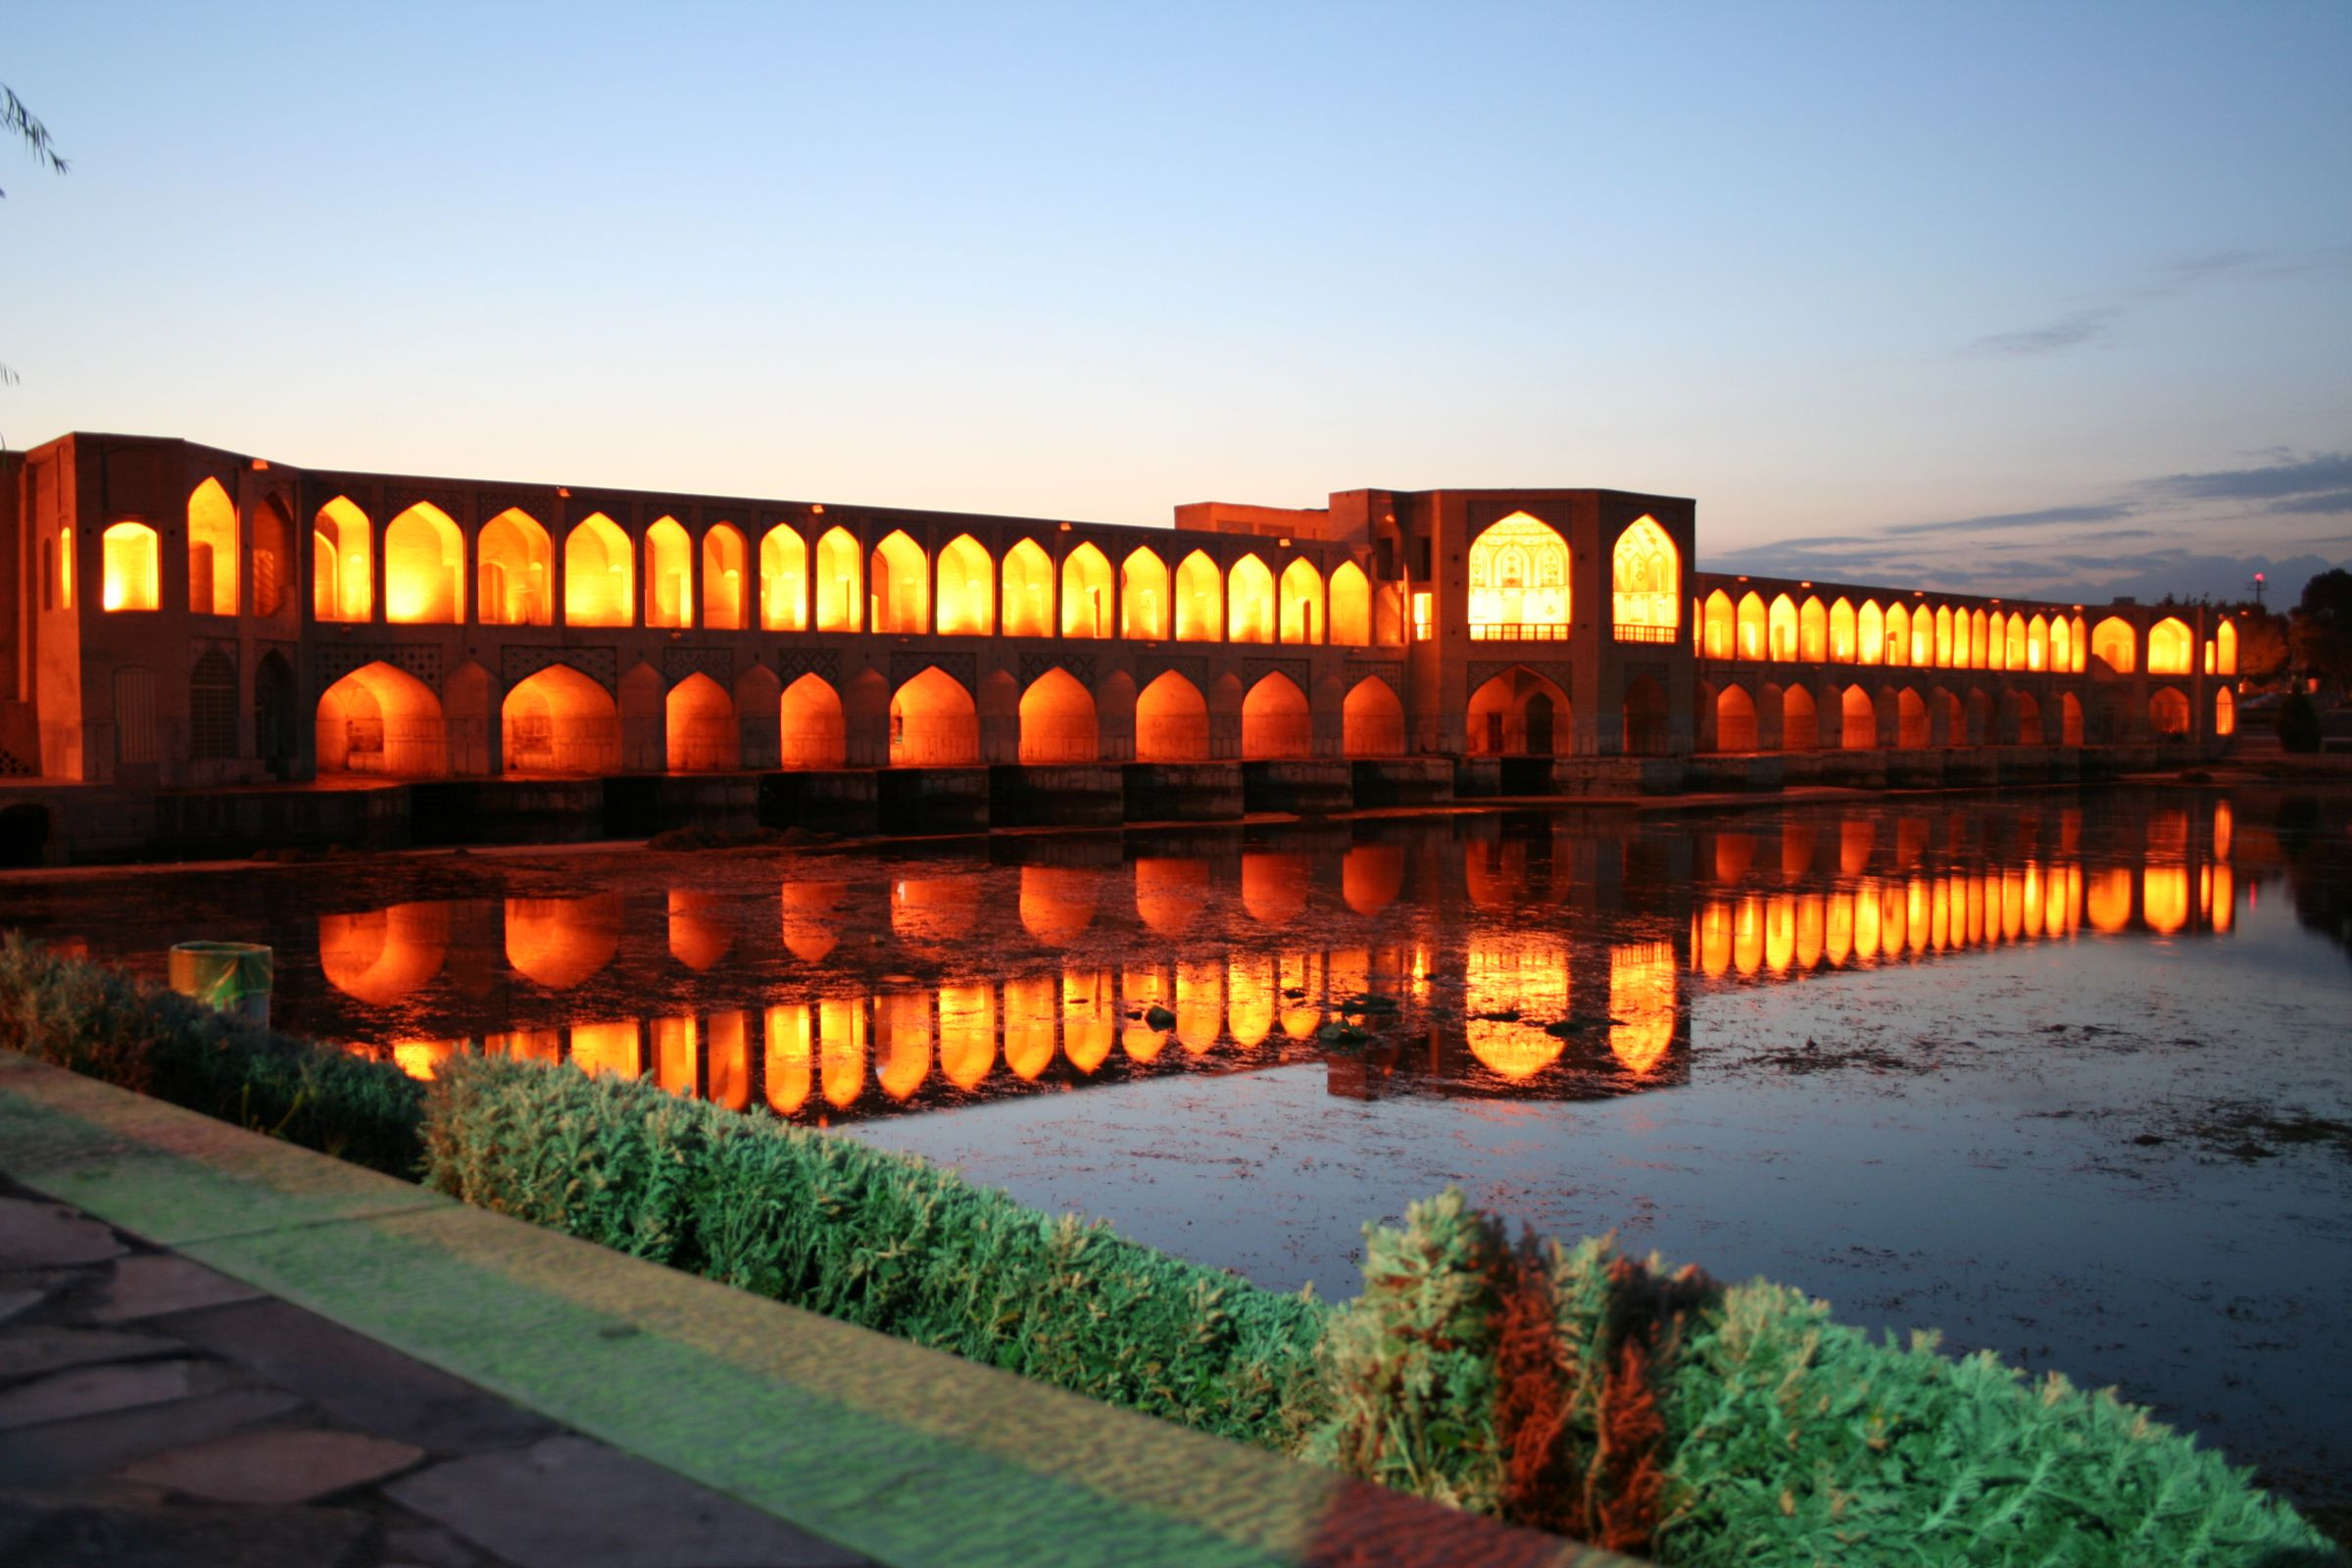 Khaju Bridge, Image source: http://upload.wikimedia.org/wikipedia/commons/6/69/Khaju_Bridje_at_night.jpg